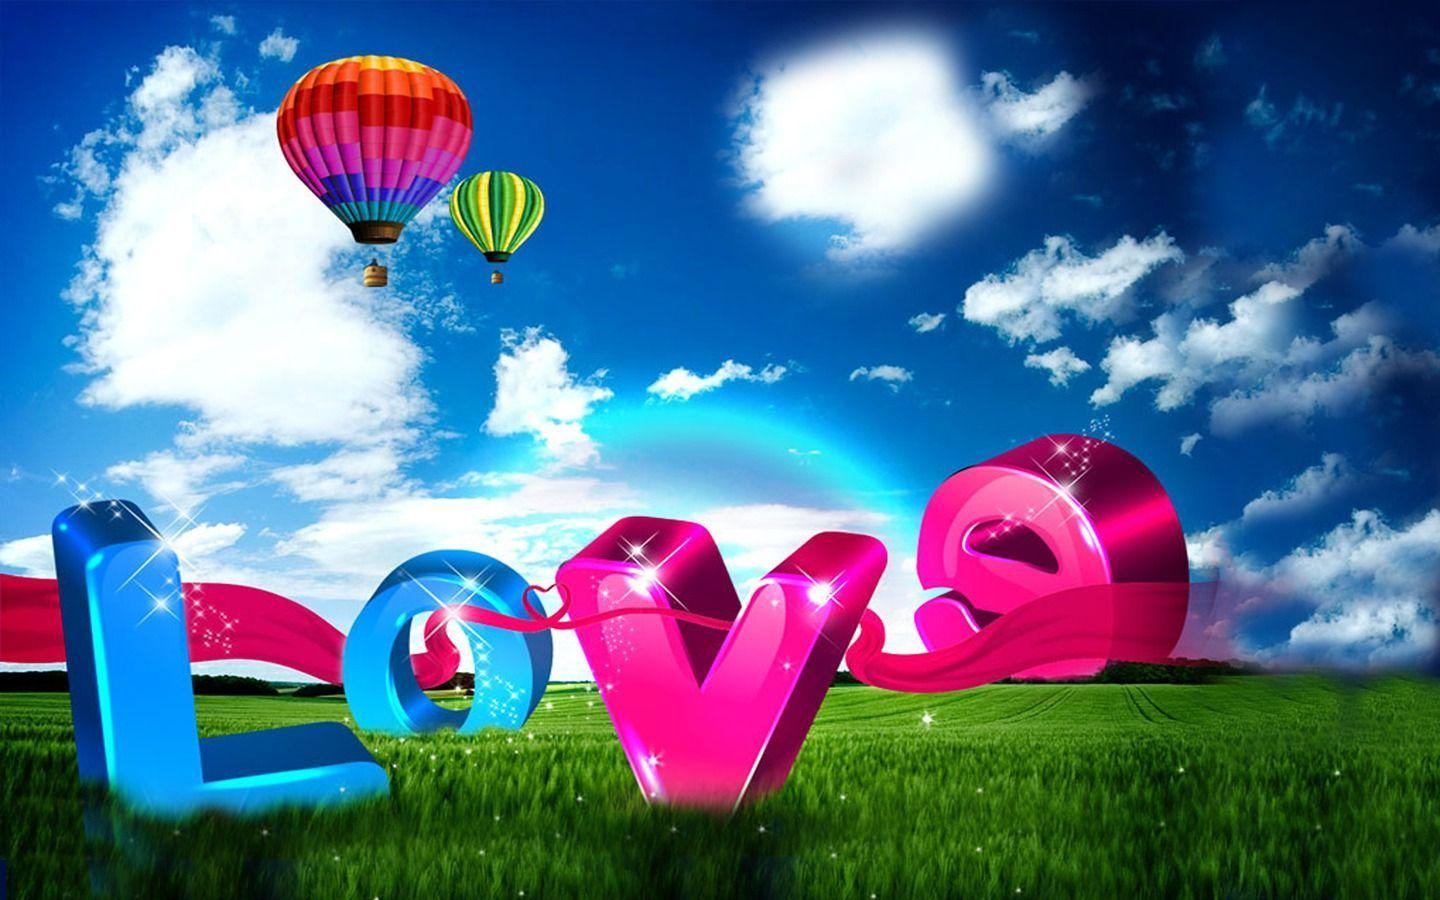 Love Wallpaper Nature : Nature Love Wallpapers - Wallpaper cave